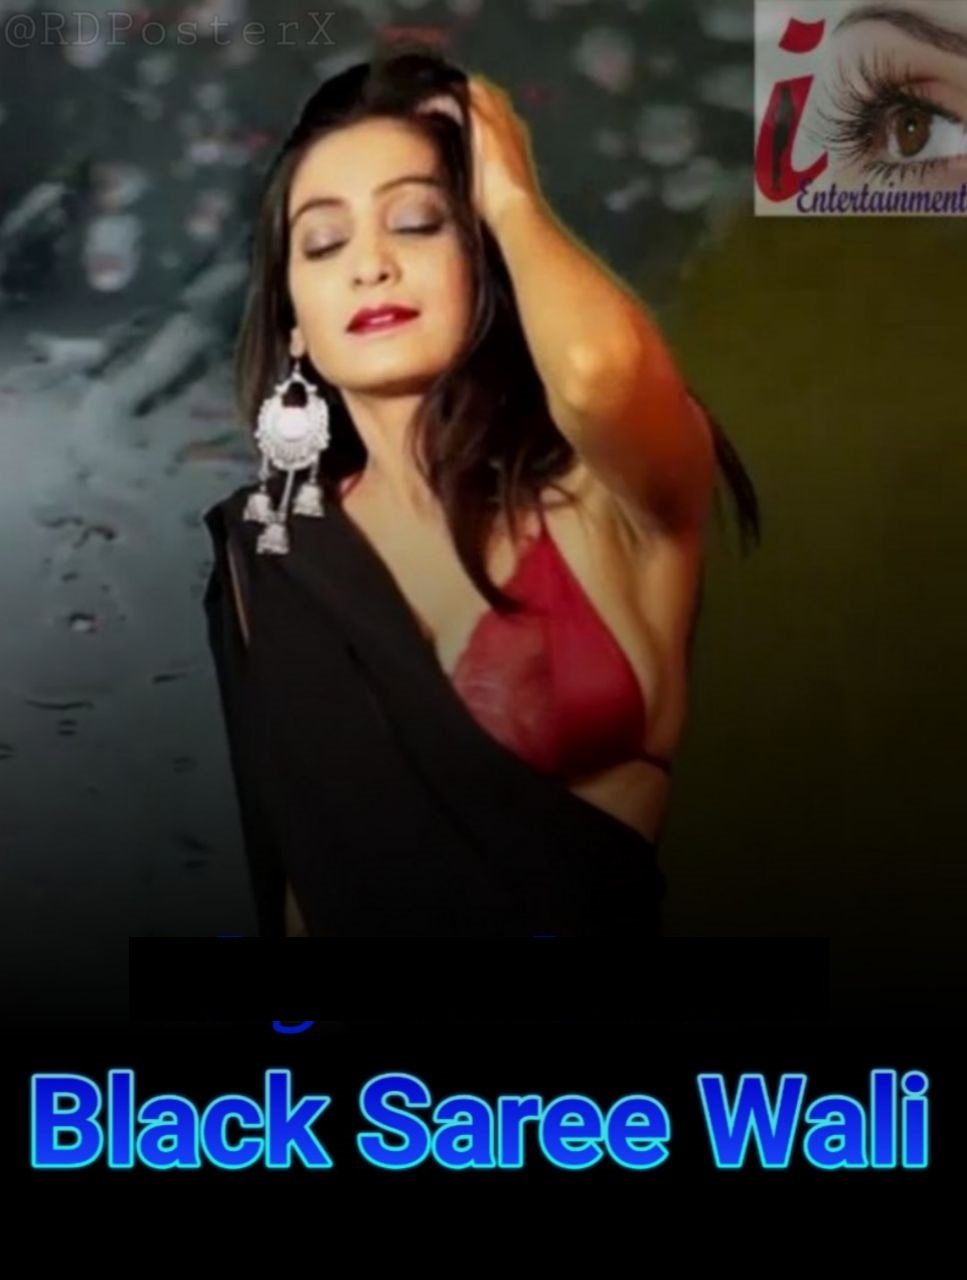 Black Saree Wali 2020 iEntertainment Originals Hindi Video 720p HDRip 100MB x264 AAC